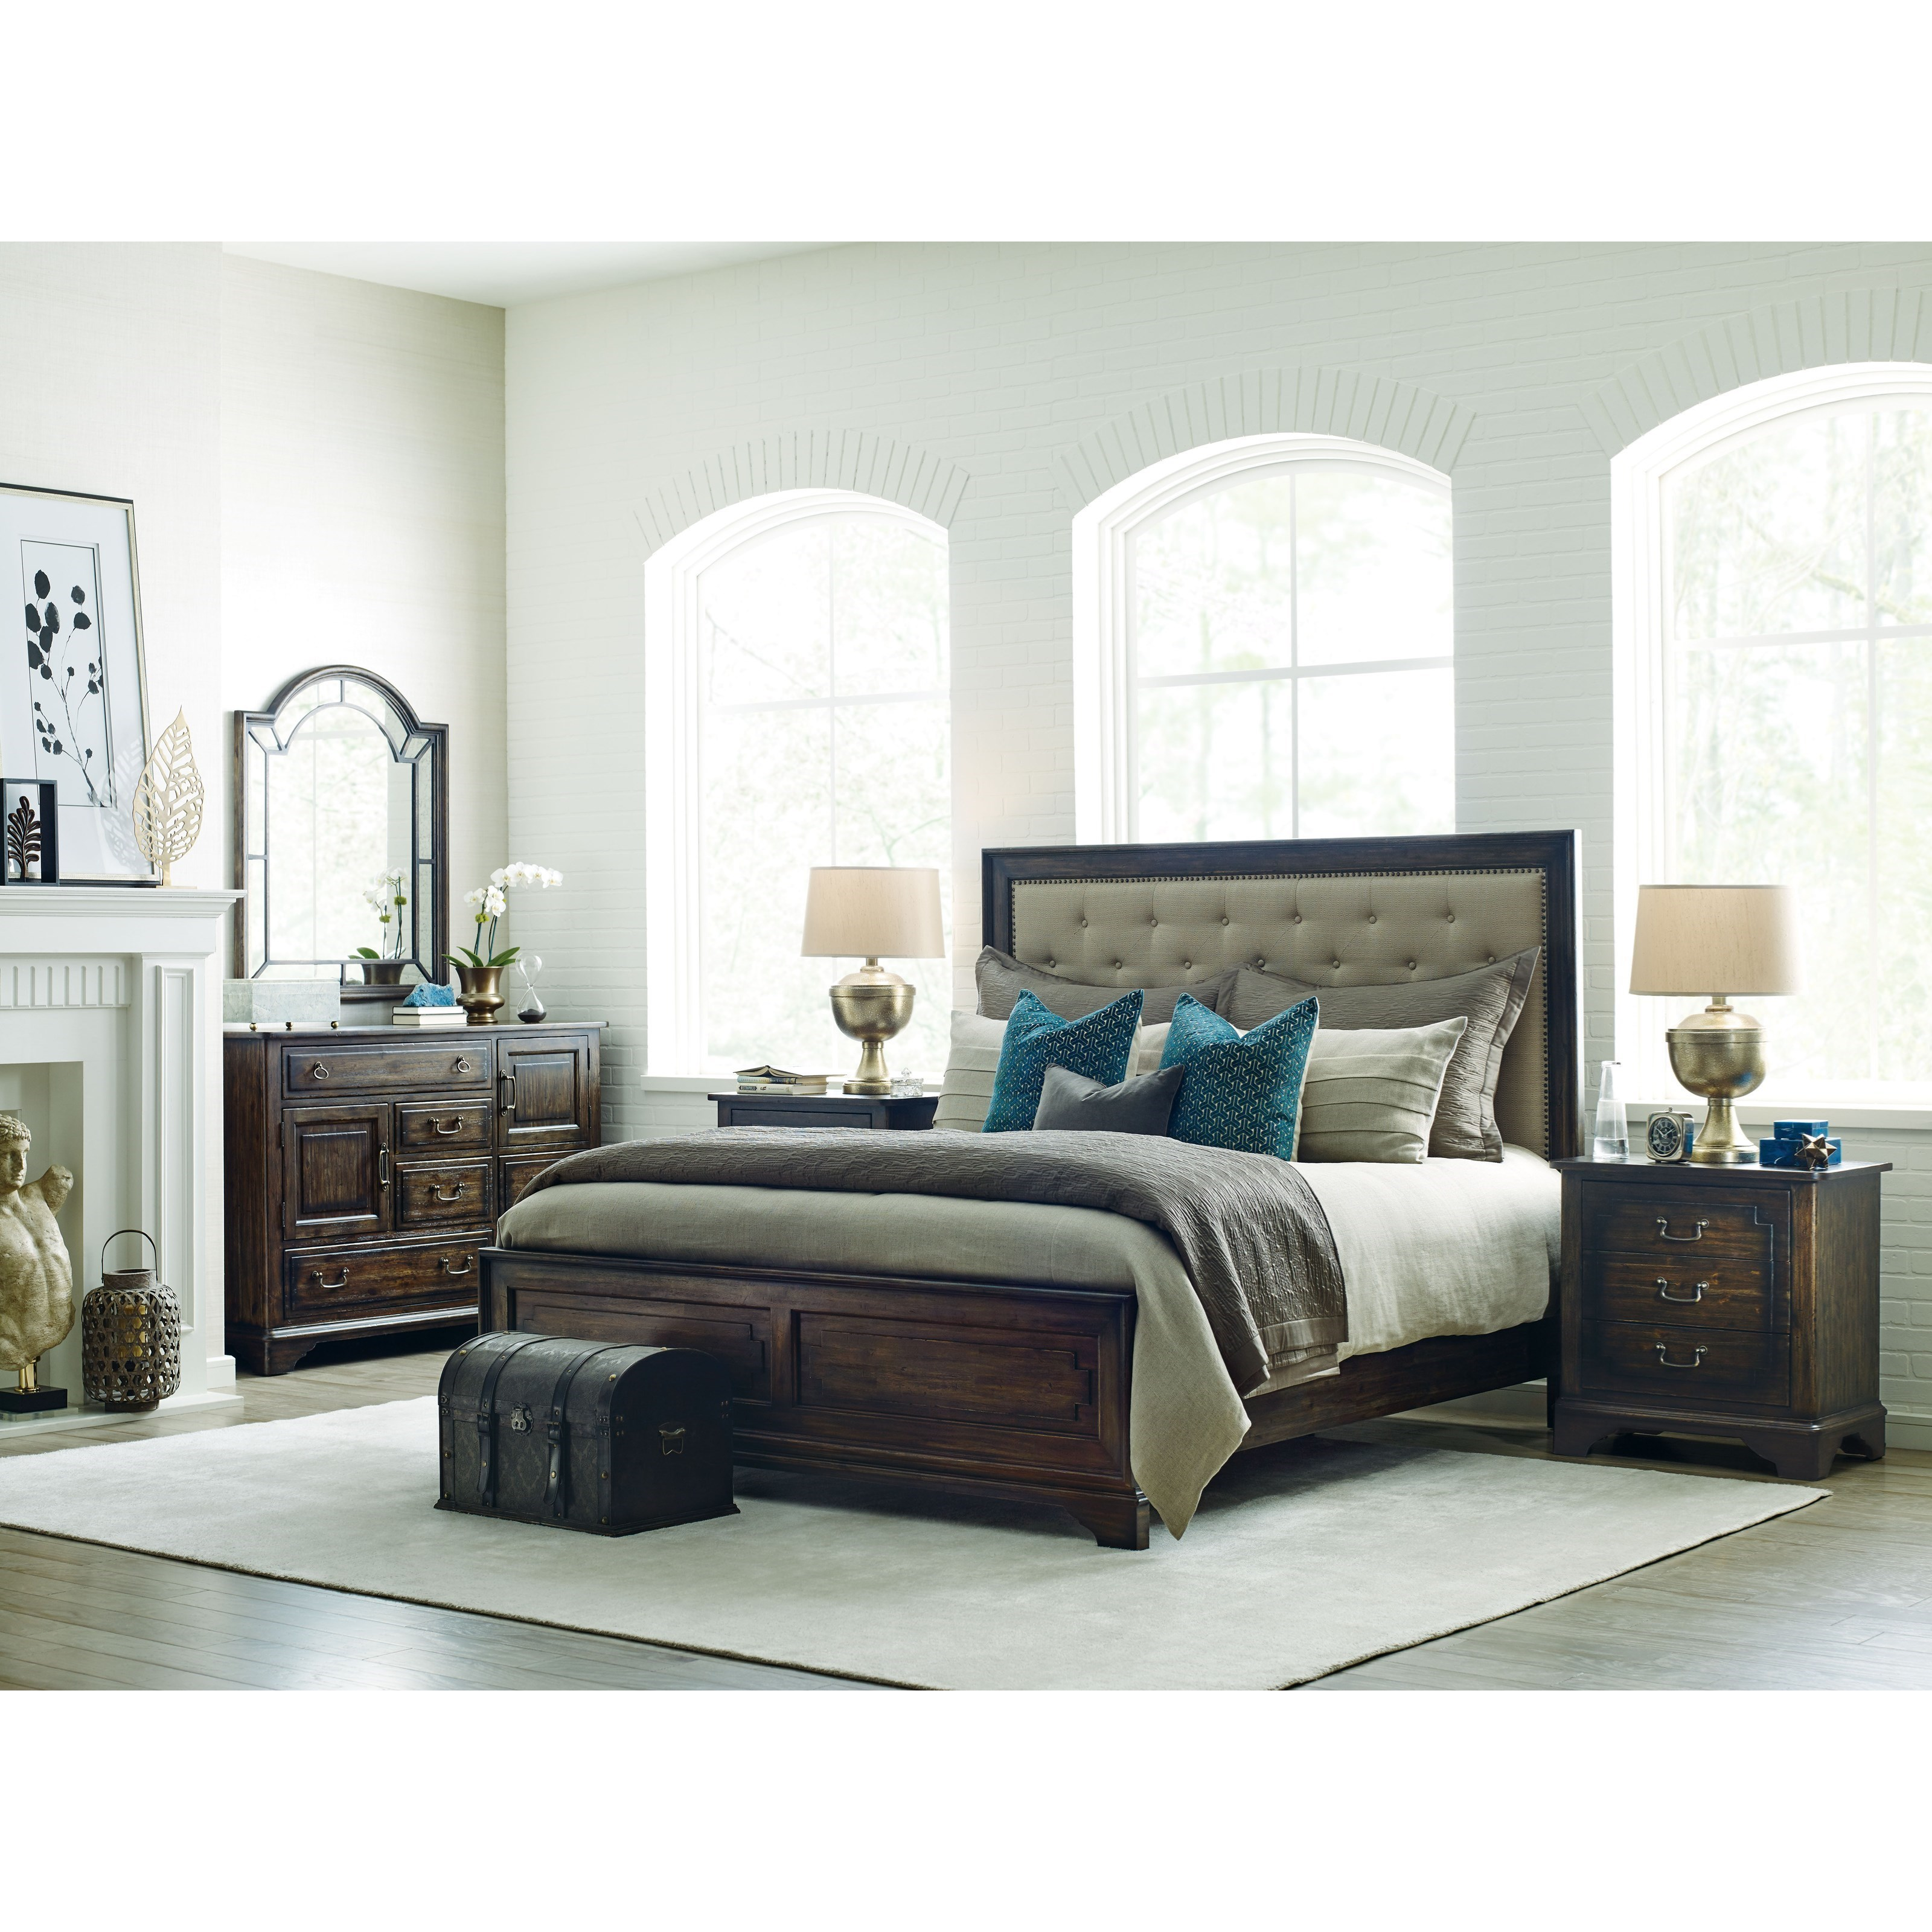 Kincaid Furniture Wildfire Queen Bedroom Group - Item Number: 86 Q Bedroom Group 1